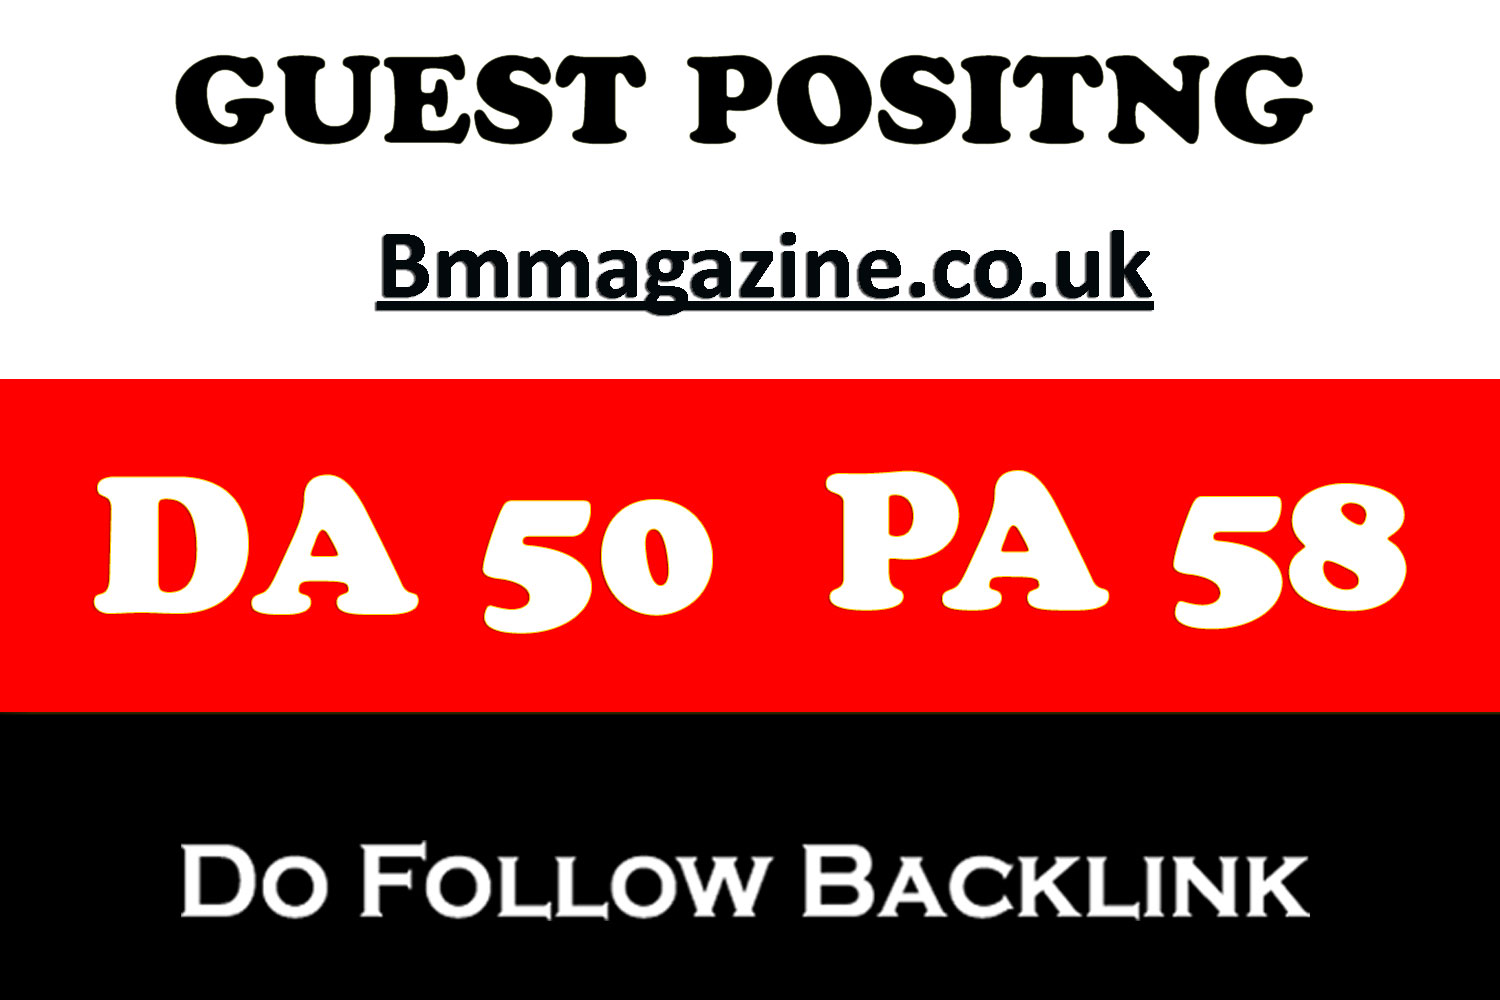 Write A Dof0llow Guest Post onUk Magazine Blog BmMagazine.co.uk DA50/PA58